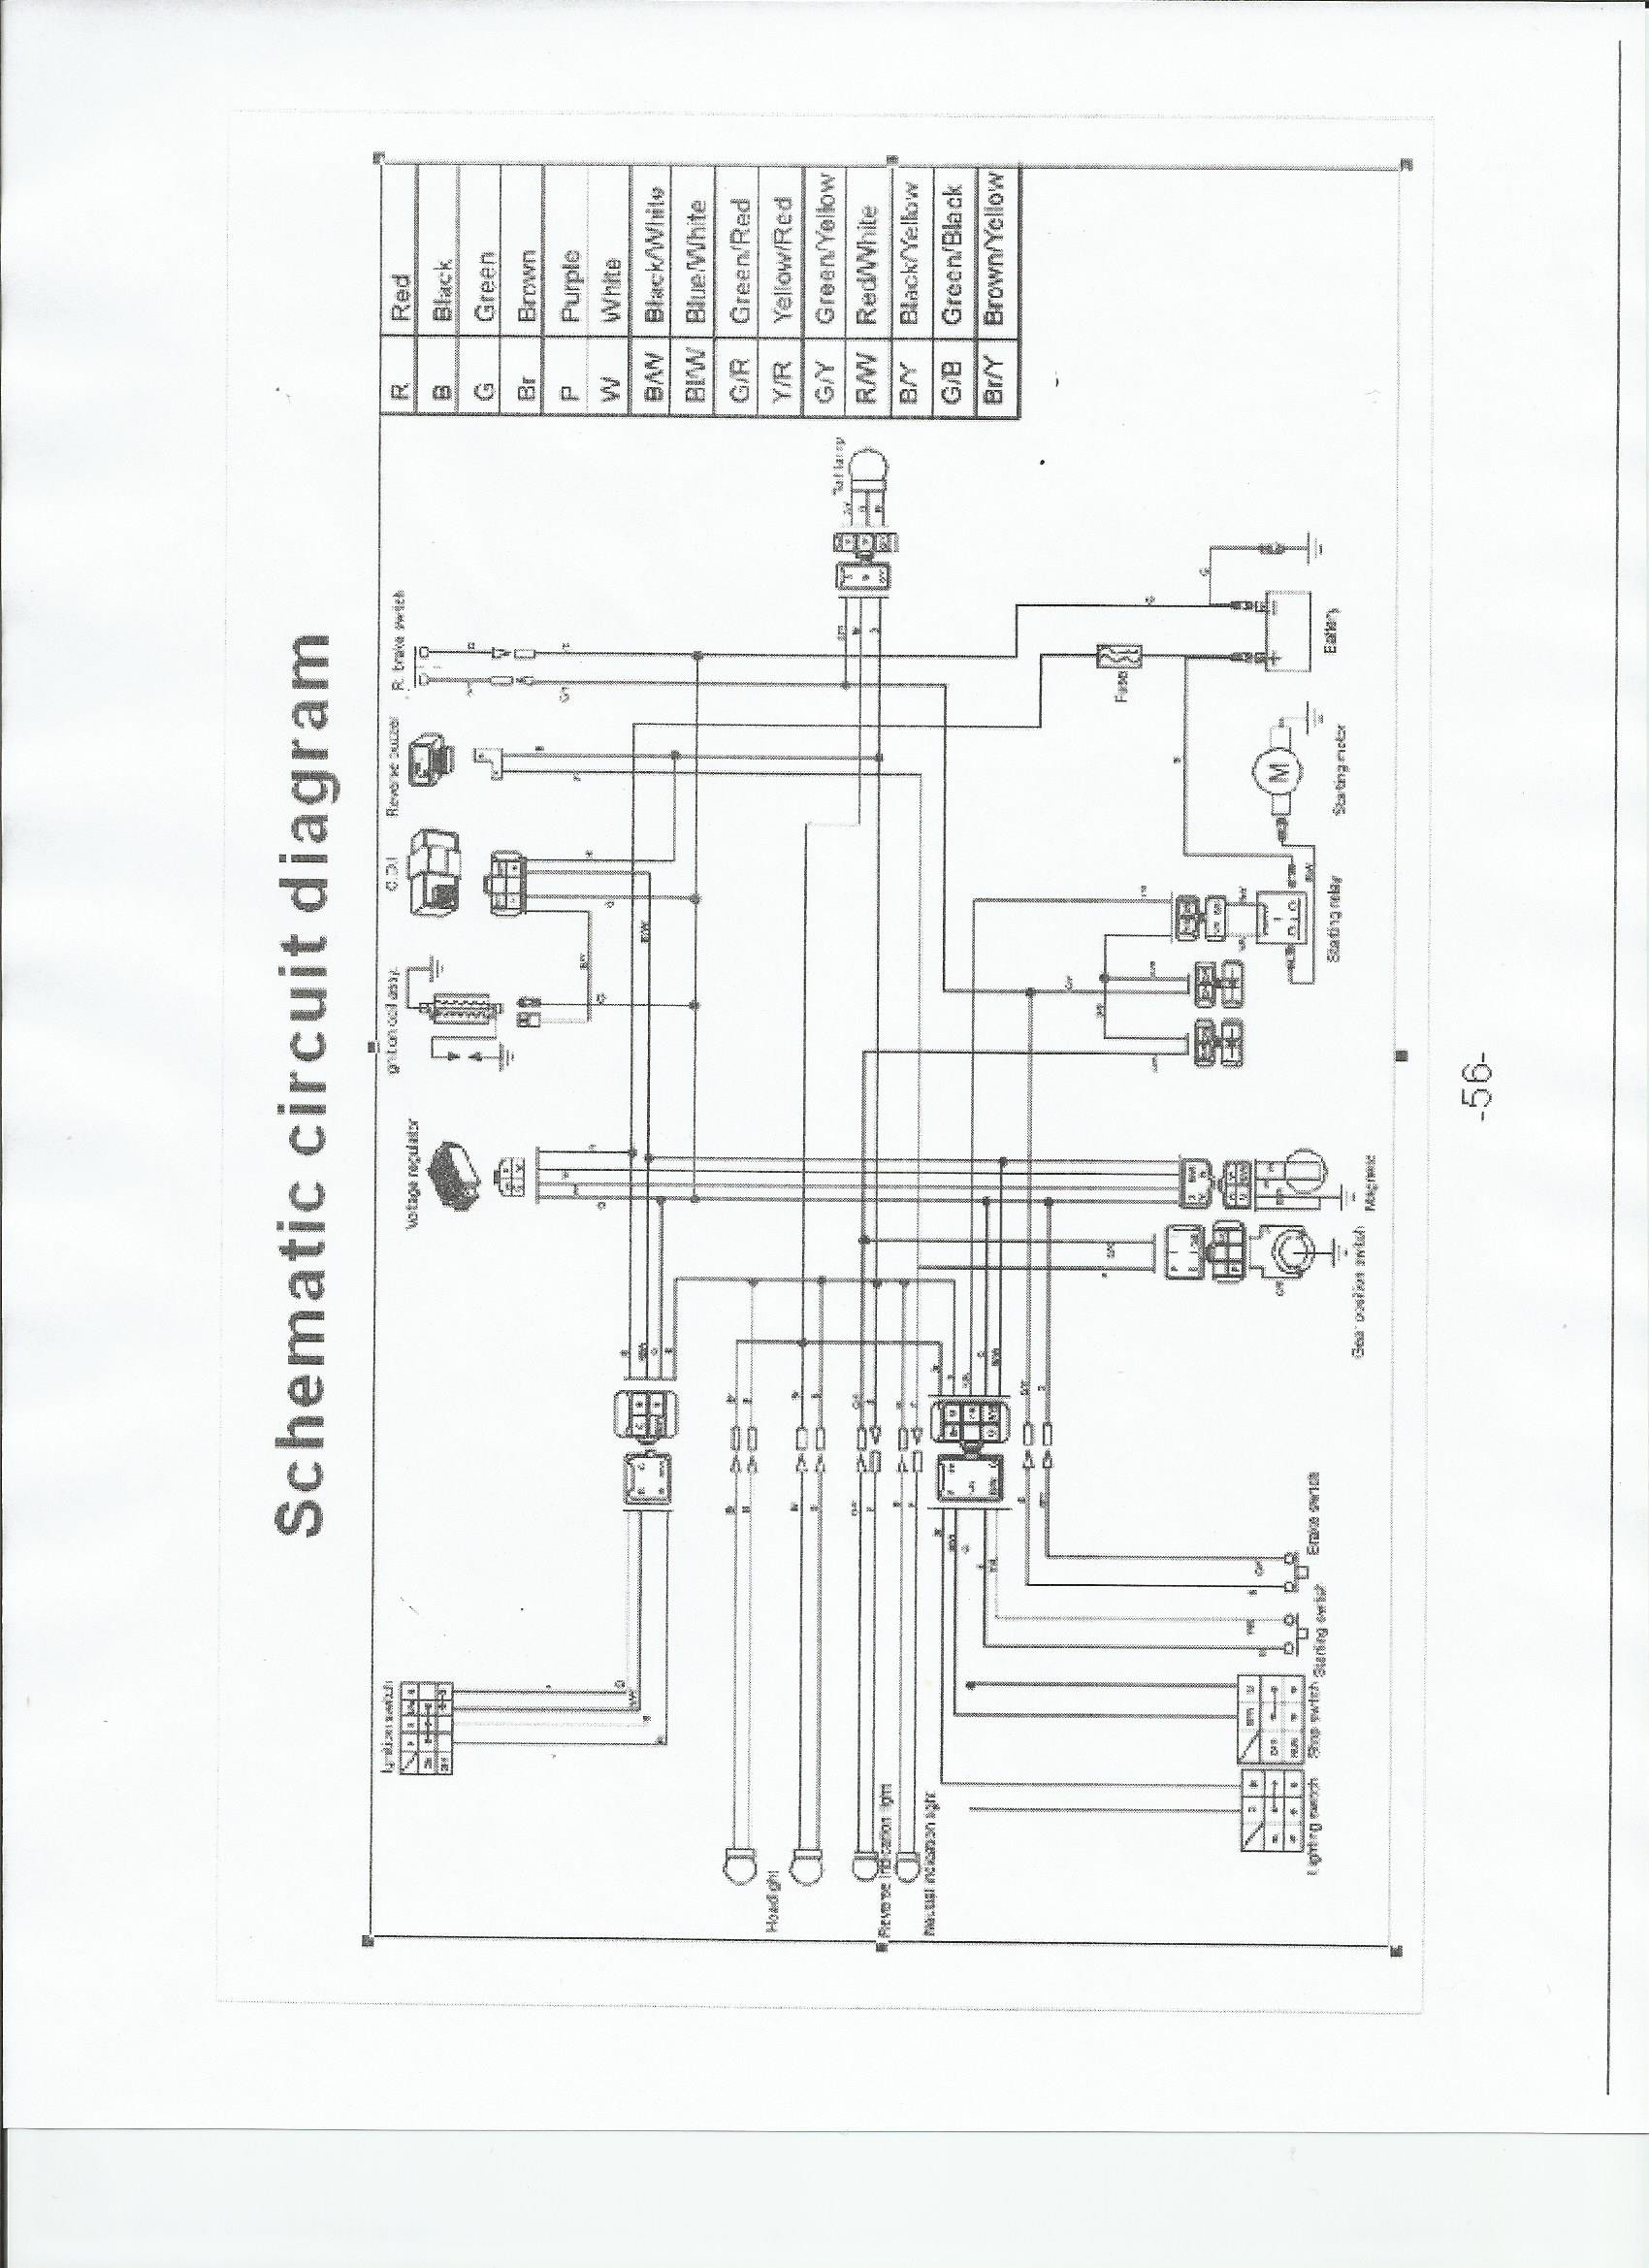 hight resolution of suzuki atv stator wiring diagram wiring diagram databasetaotao 50 scooter cdi wiring diagram